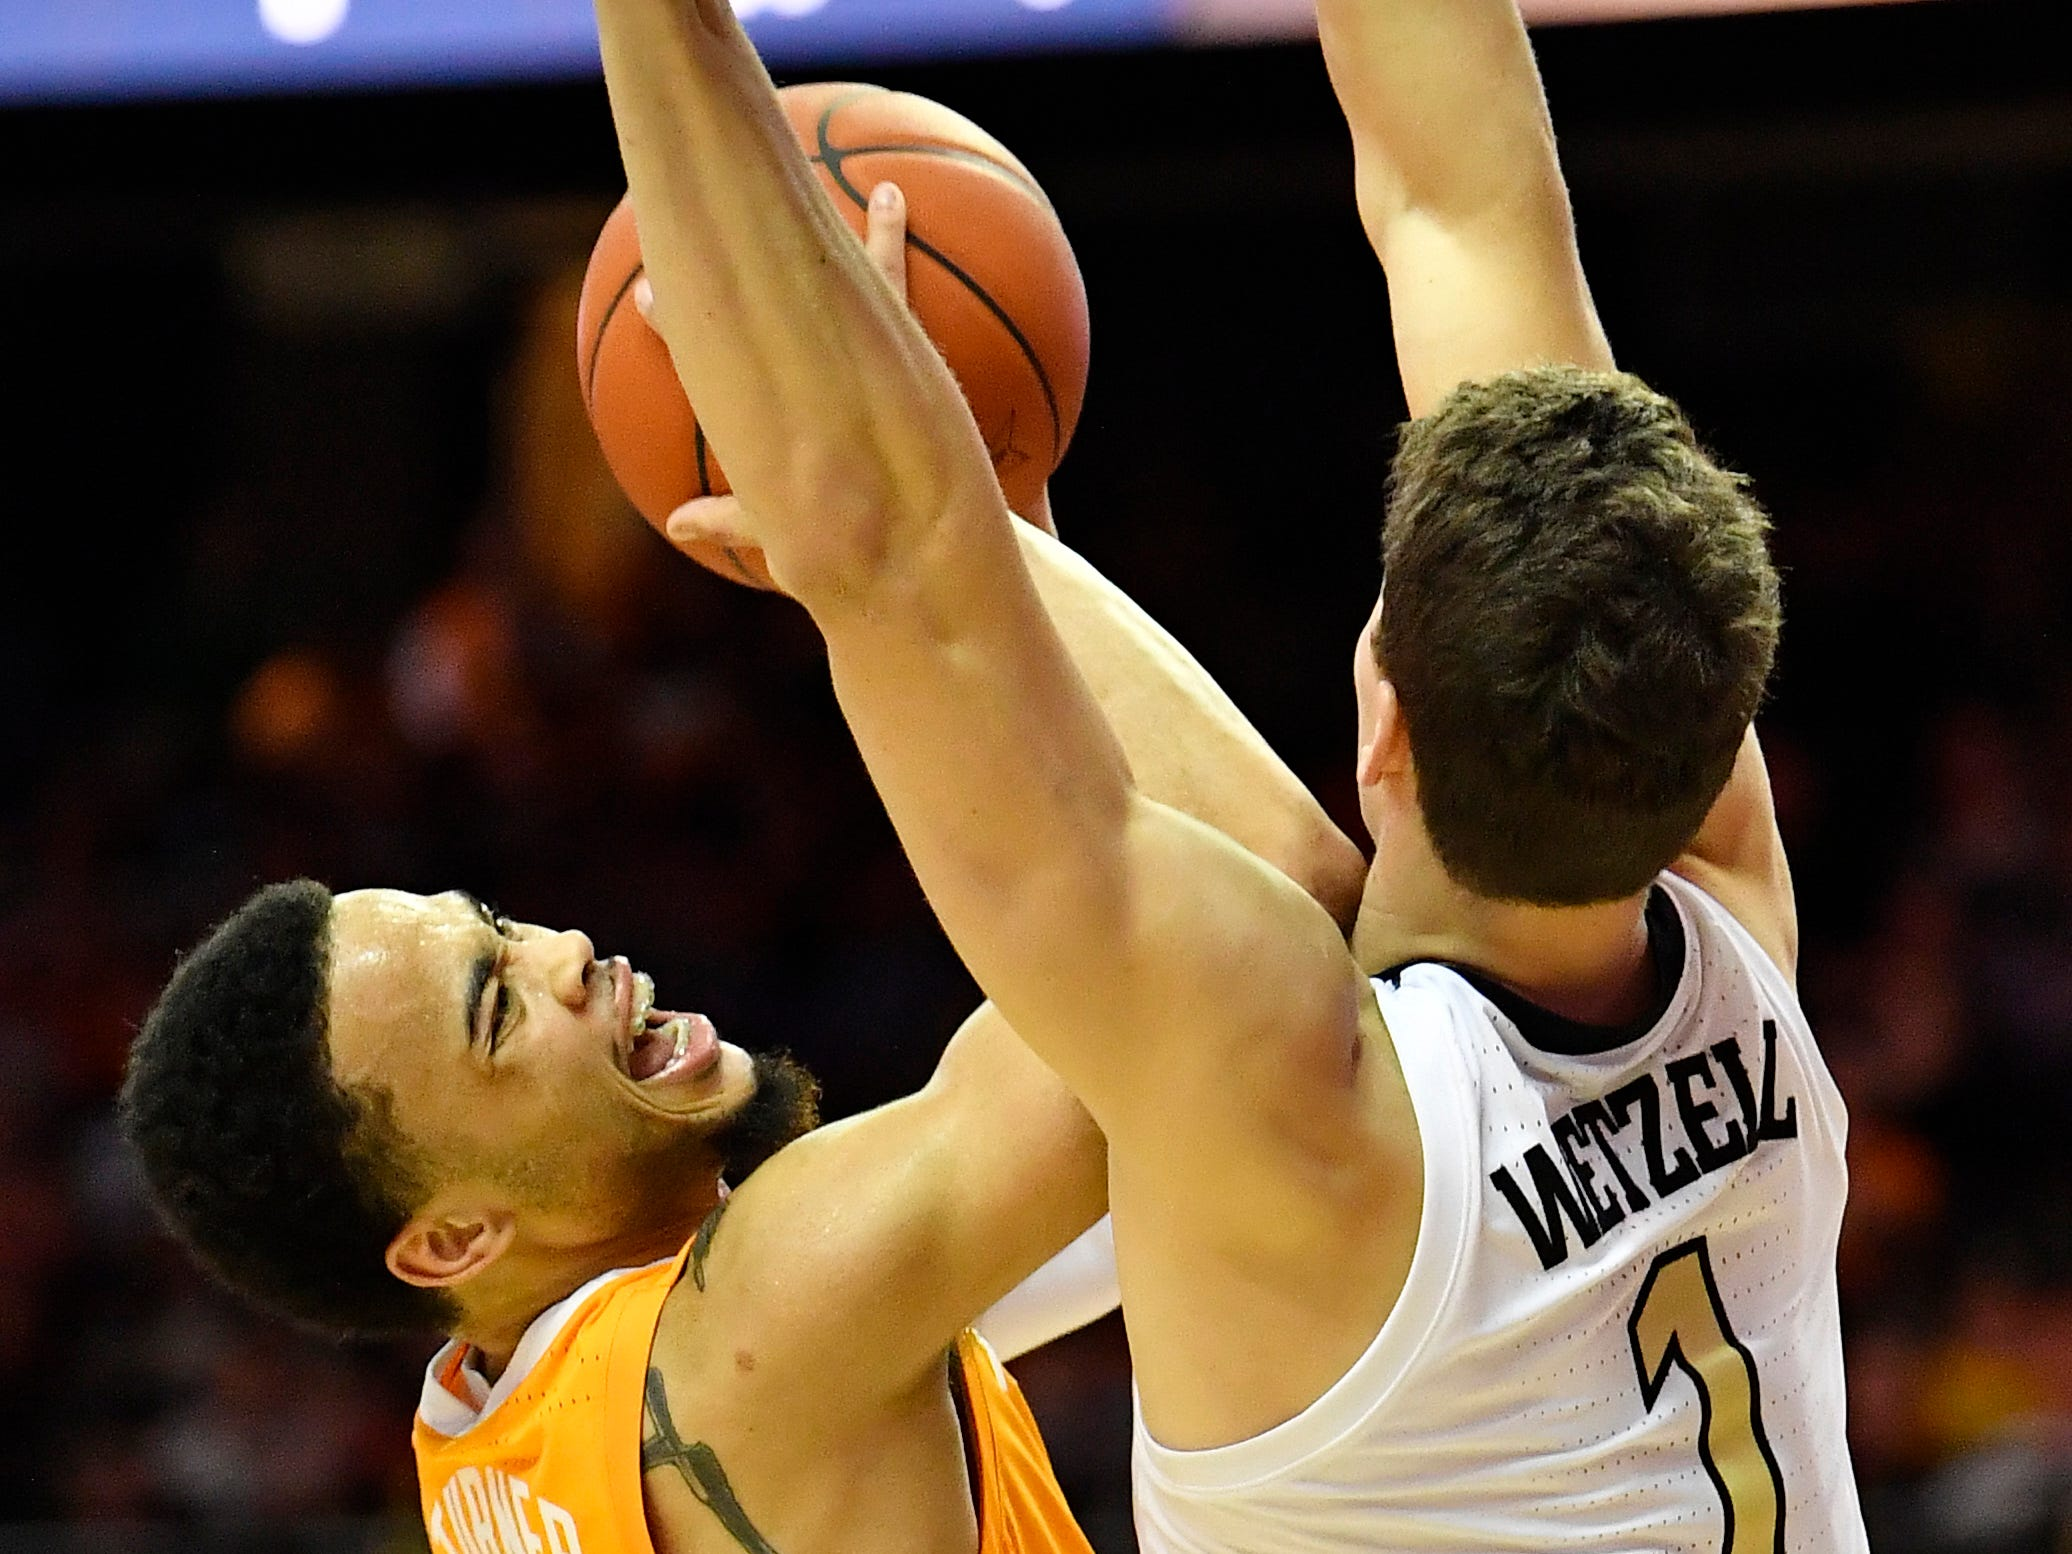 UT guard Lamonte Turner (1) is fouled as he shoots during the second half at Memorial Gym in Nashville, Tenn., Wednesday, Jan. 23, 2019.